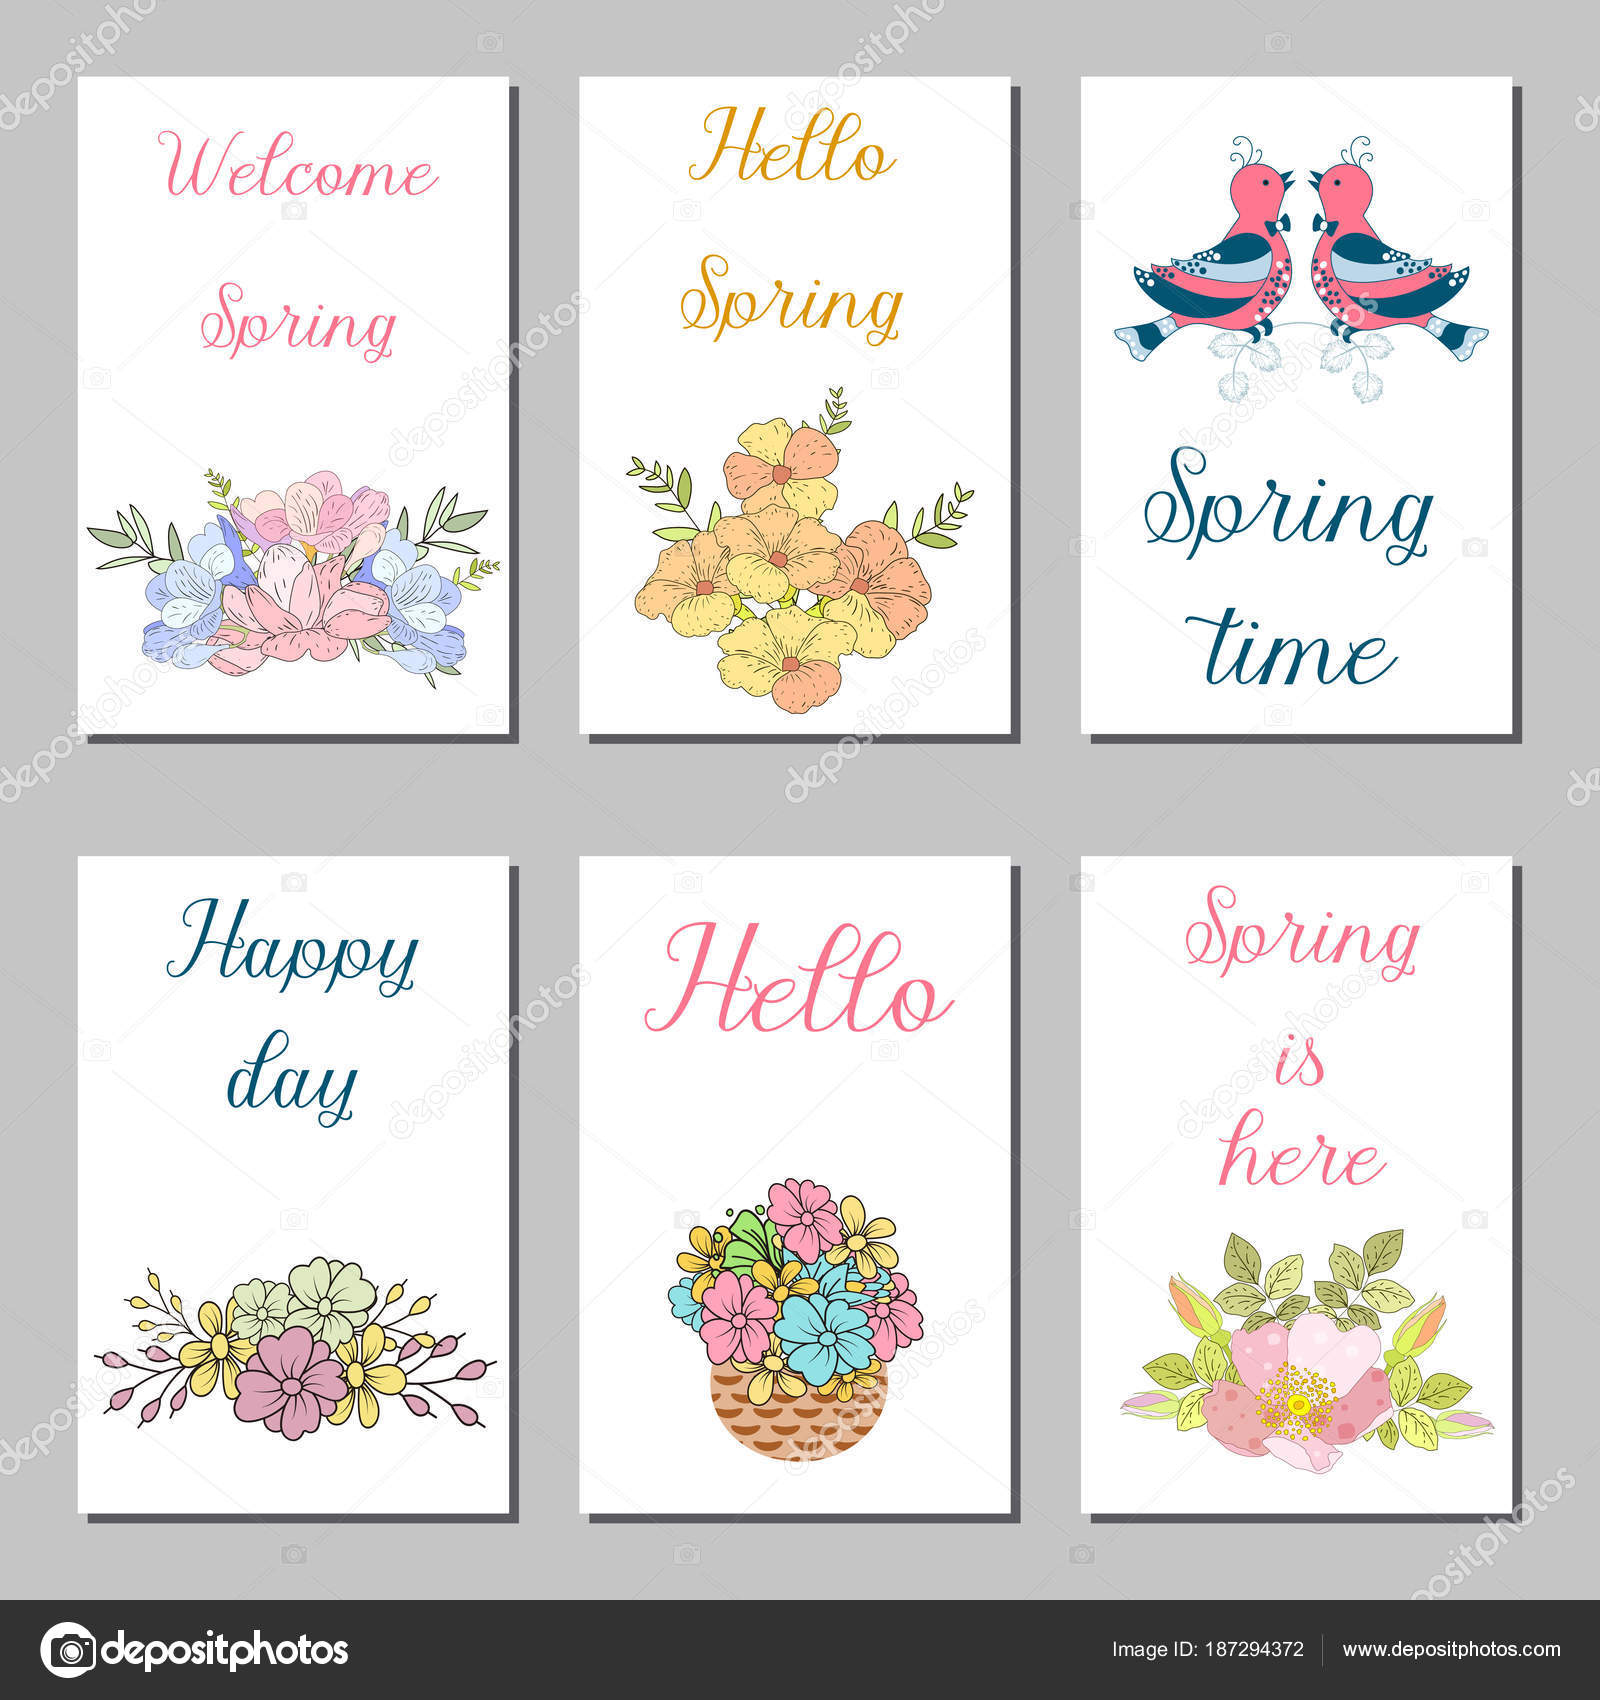 Birthday Cards Design Set With Abstract Flowers And Hand Written